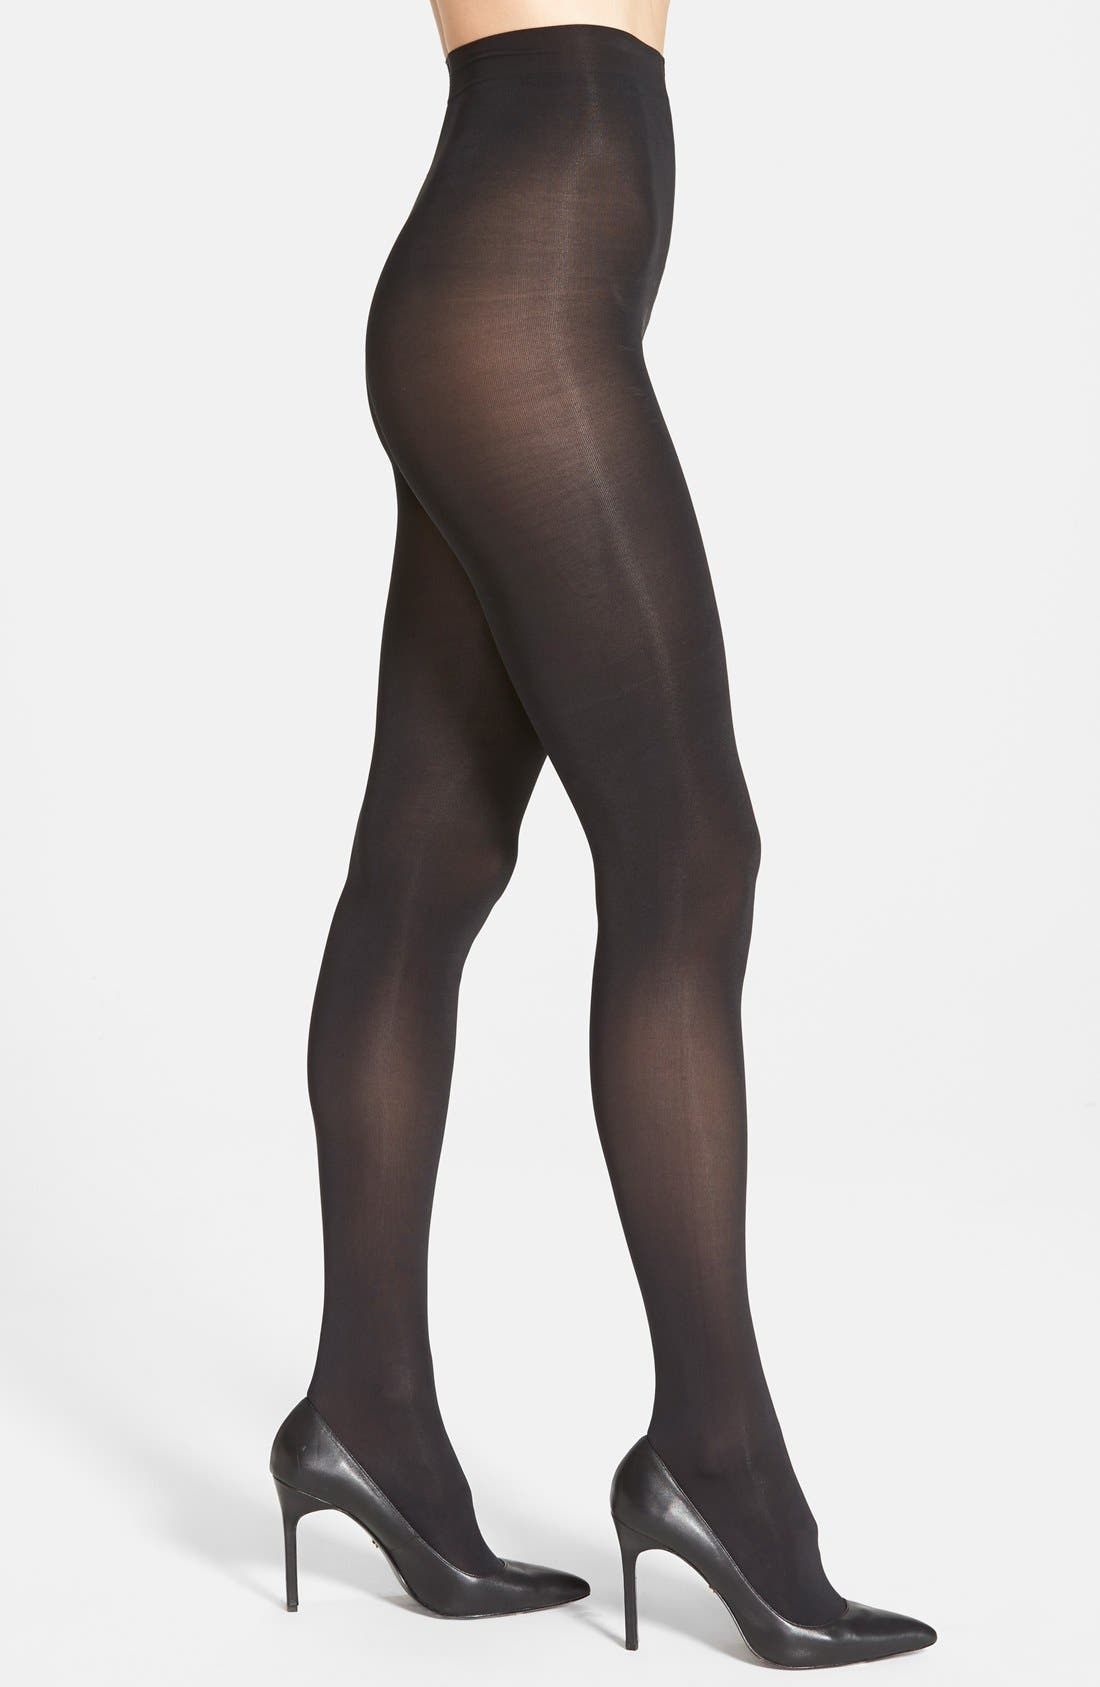 Donna Karan 'Evolution' Satin Jersey Tights